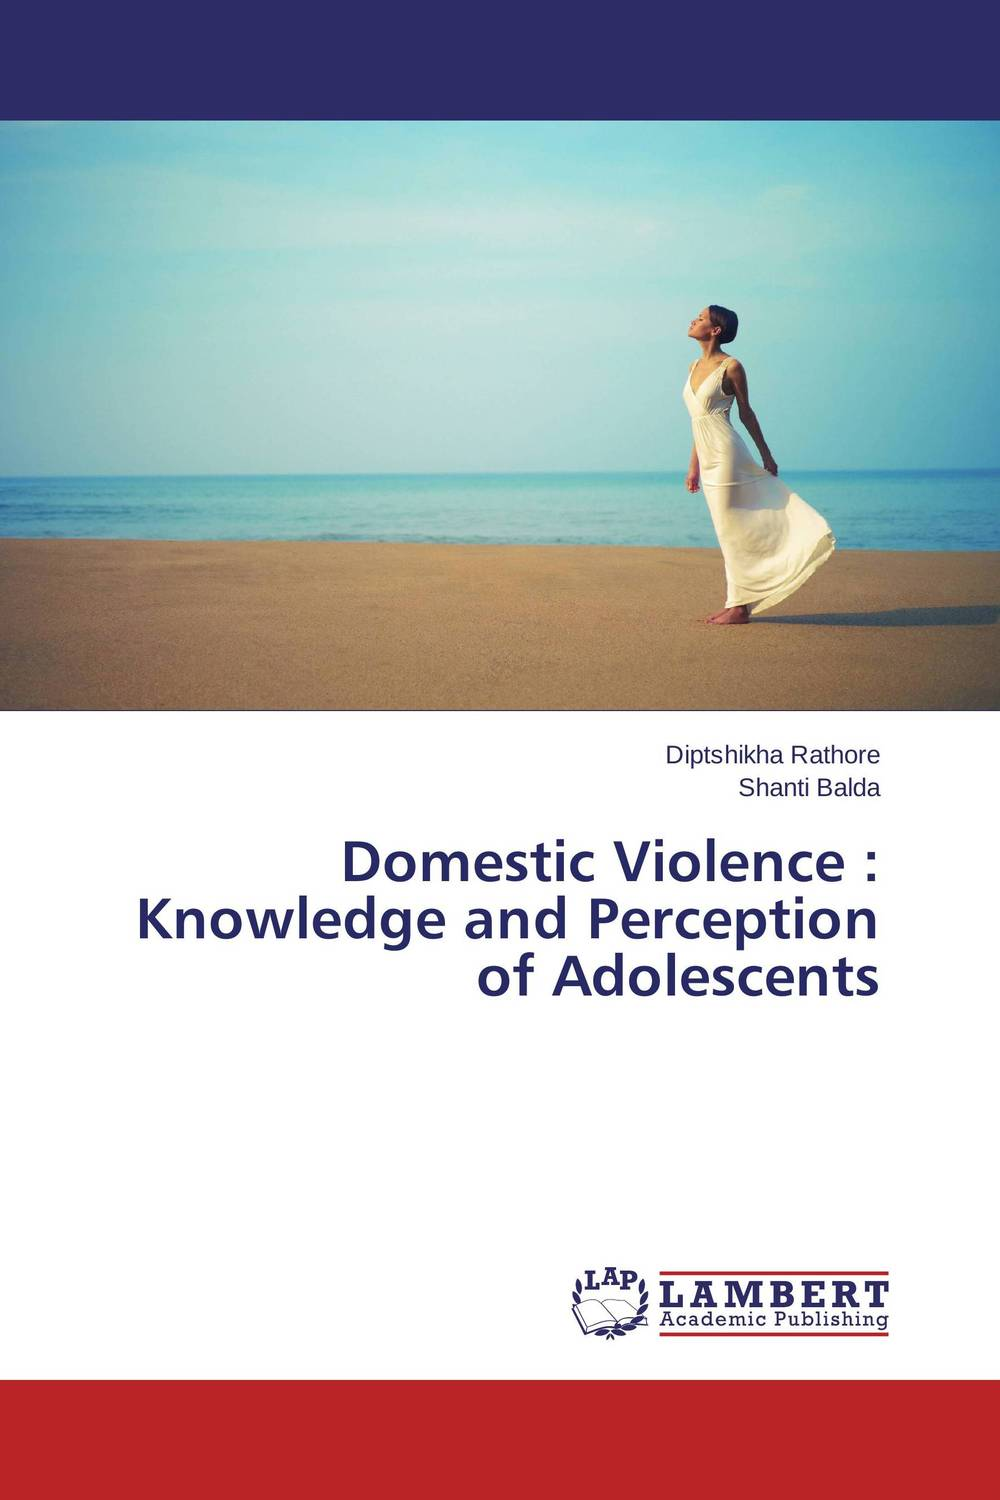 Domestic Violence : Knowledge and Perception of Adolescents aliou ayaba and lyhotely ndagijimana domestic worker vulnerability to violence and hiv infection